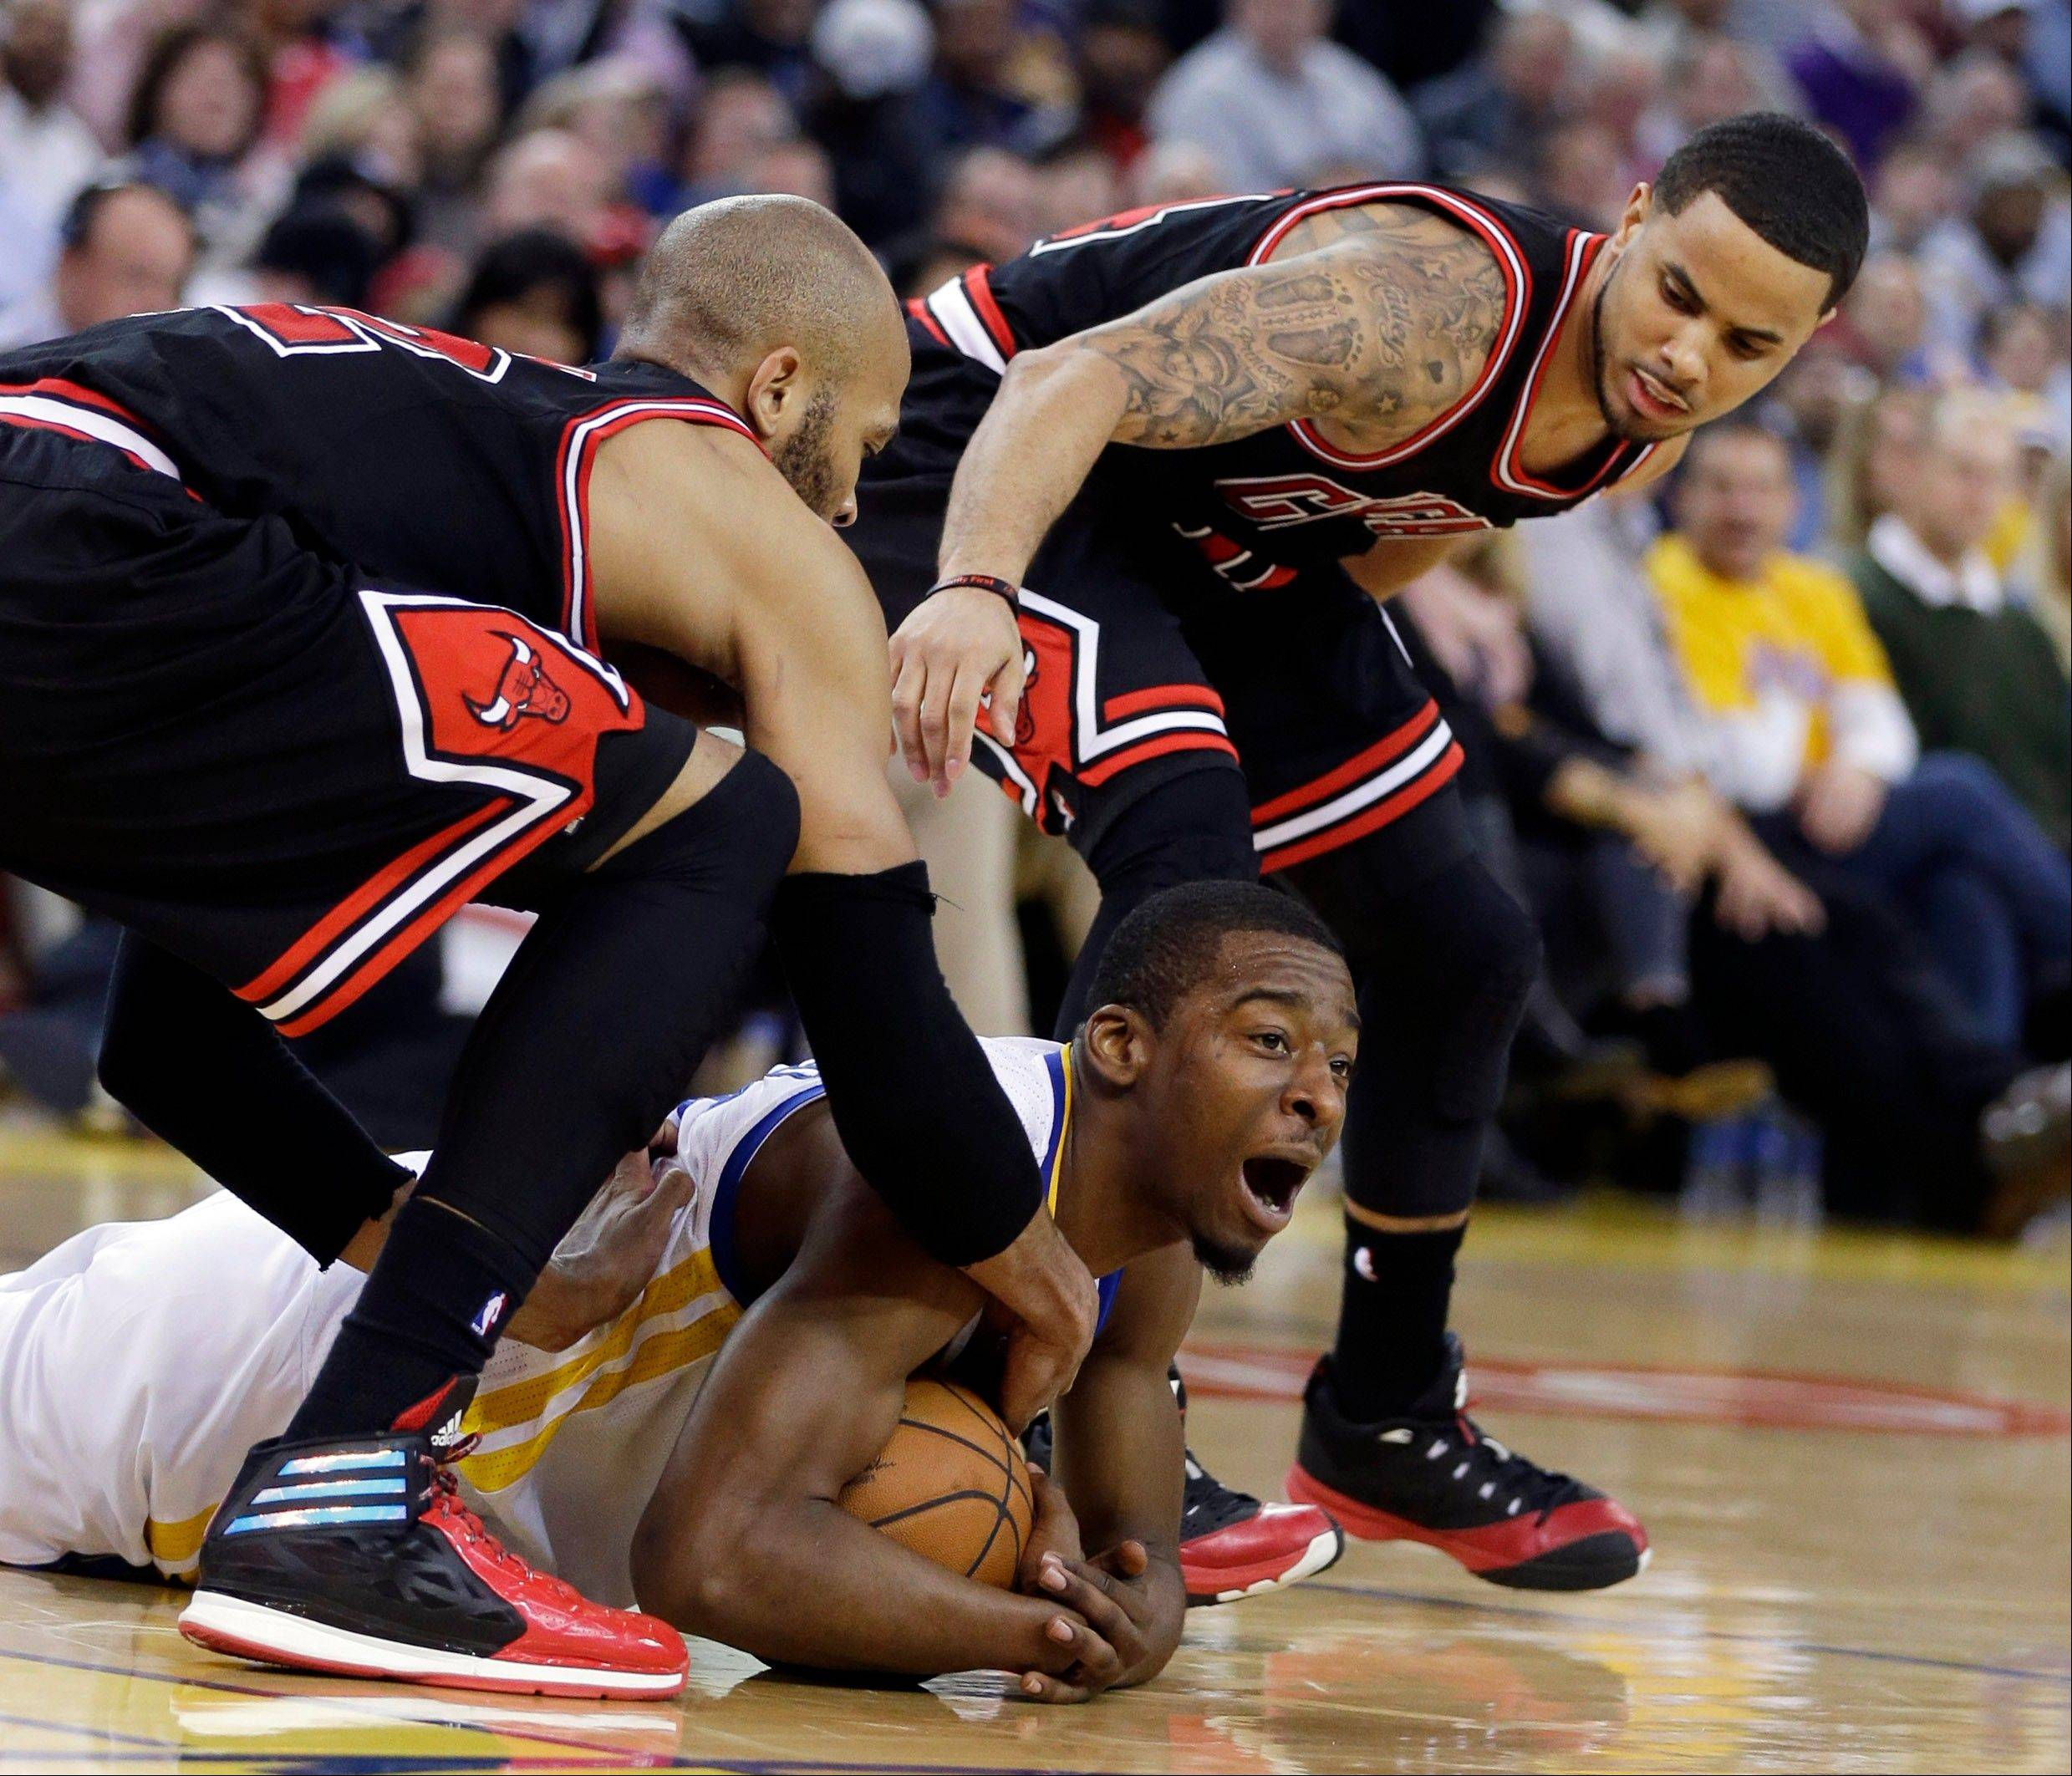 Golden State Warriors' Jordan Crawford, center, fights for a loose ball against Taj Gibson, left, and D.J. Augustin of the bulls in Thursday's NBA game in Oakland, Calif. Golden State won 102-87.